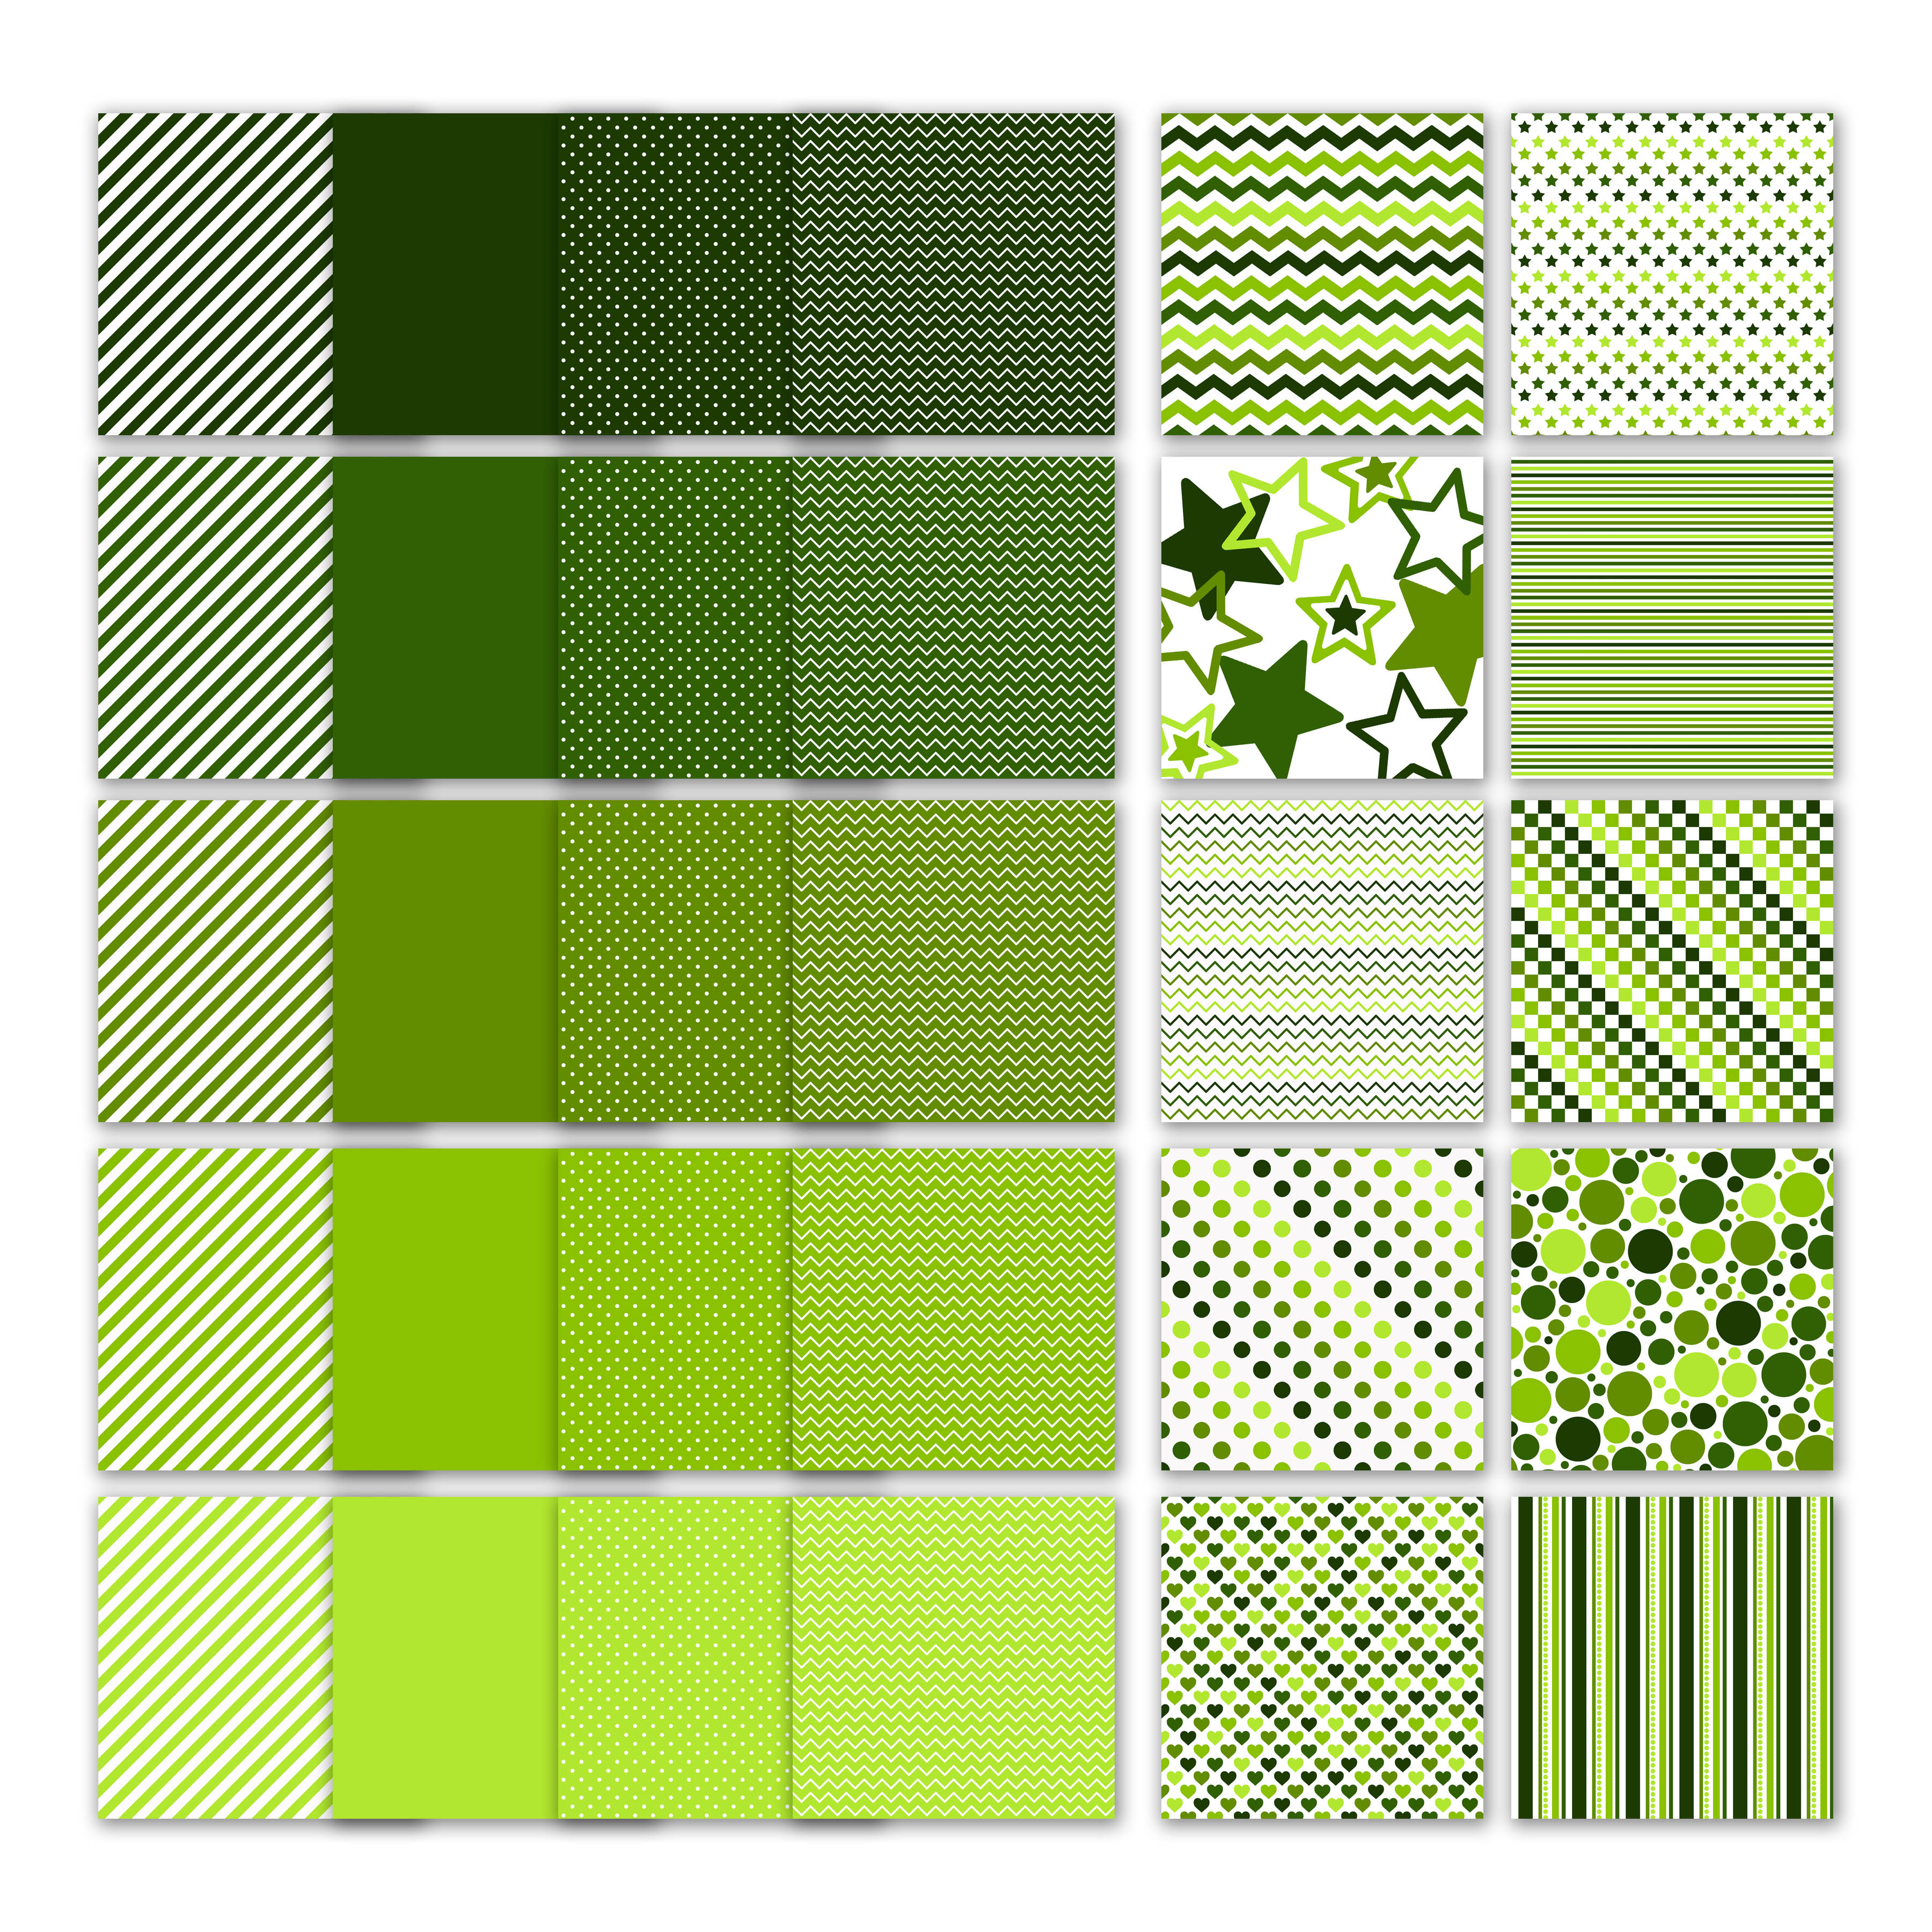 Print on Demand: Green Digital Paper Graphic Backgrounds By oldmarketdesigns - Image 2